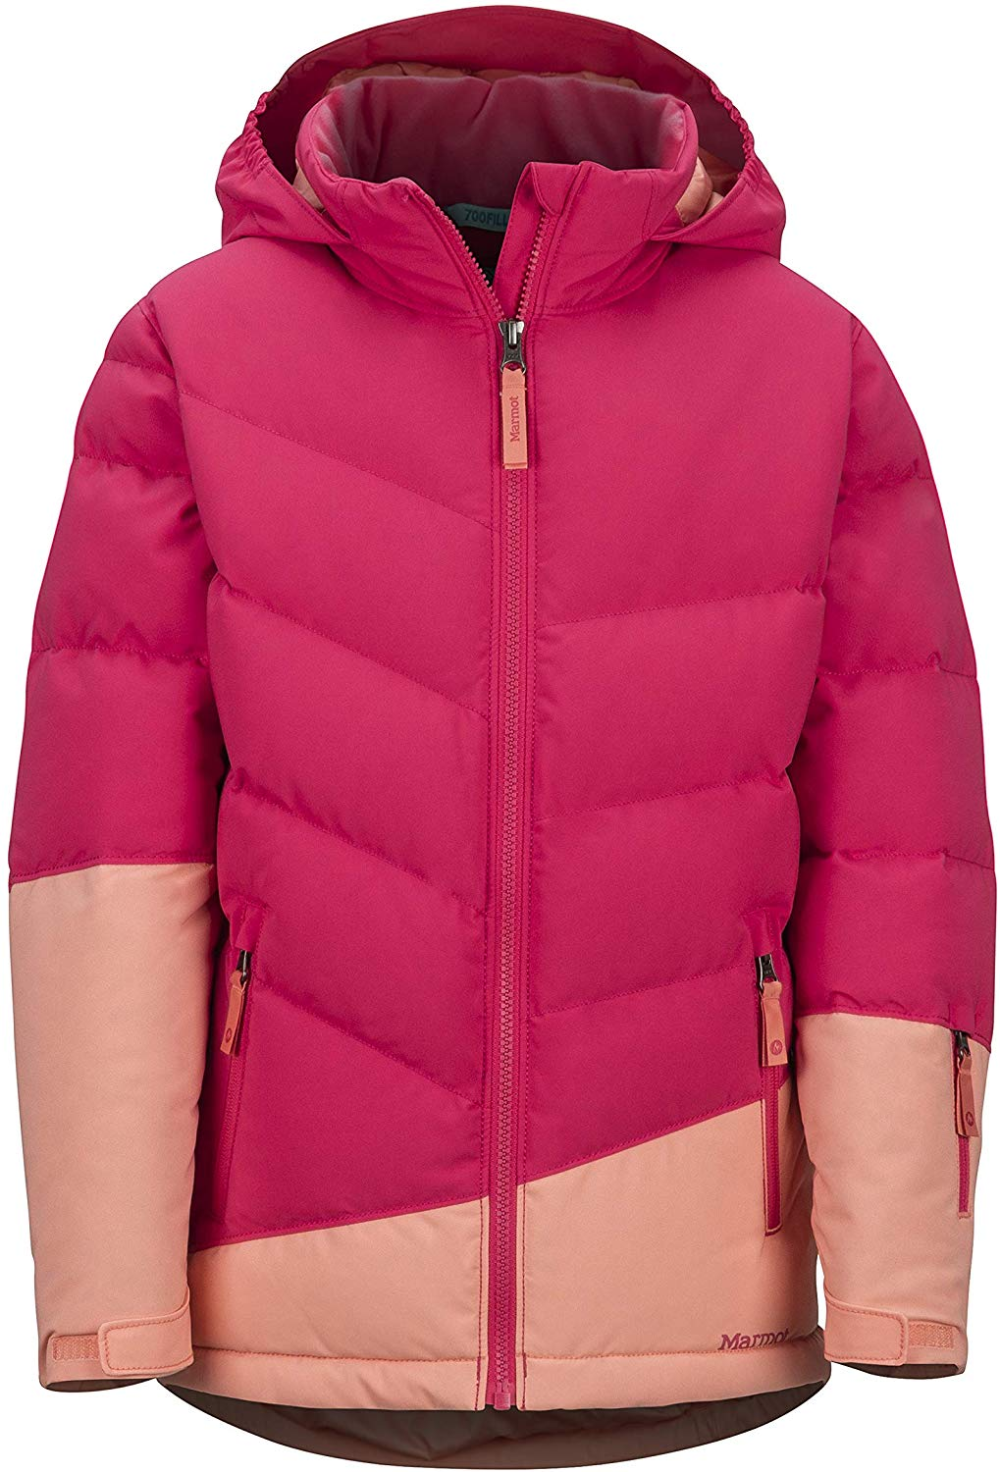 Etecredpow Boys Warm Cotton-Padded Down Jacket Hooded Winter Quilted Parka Coat